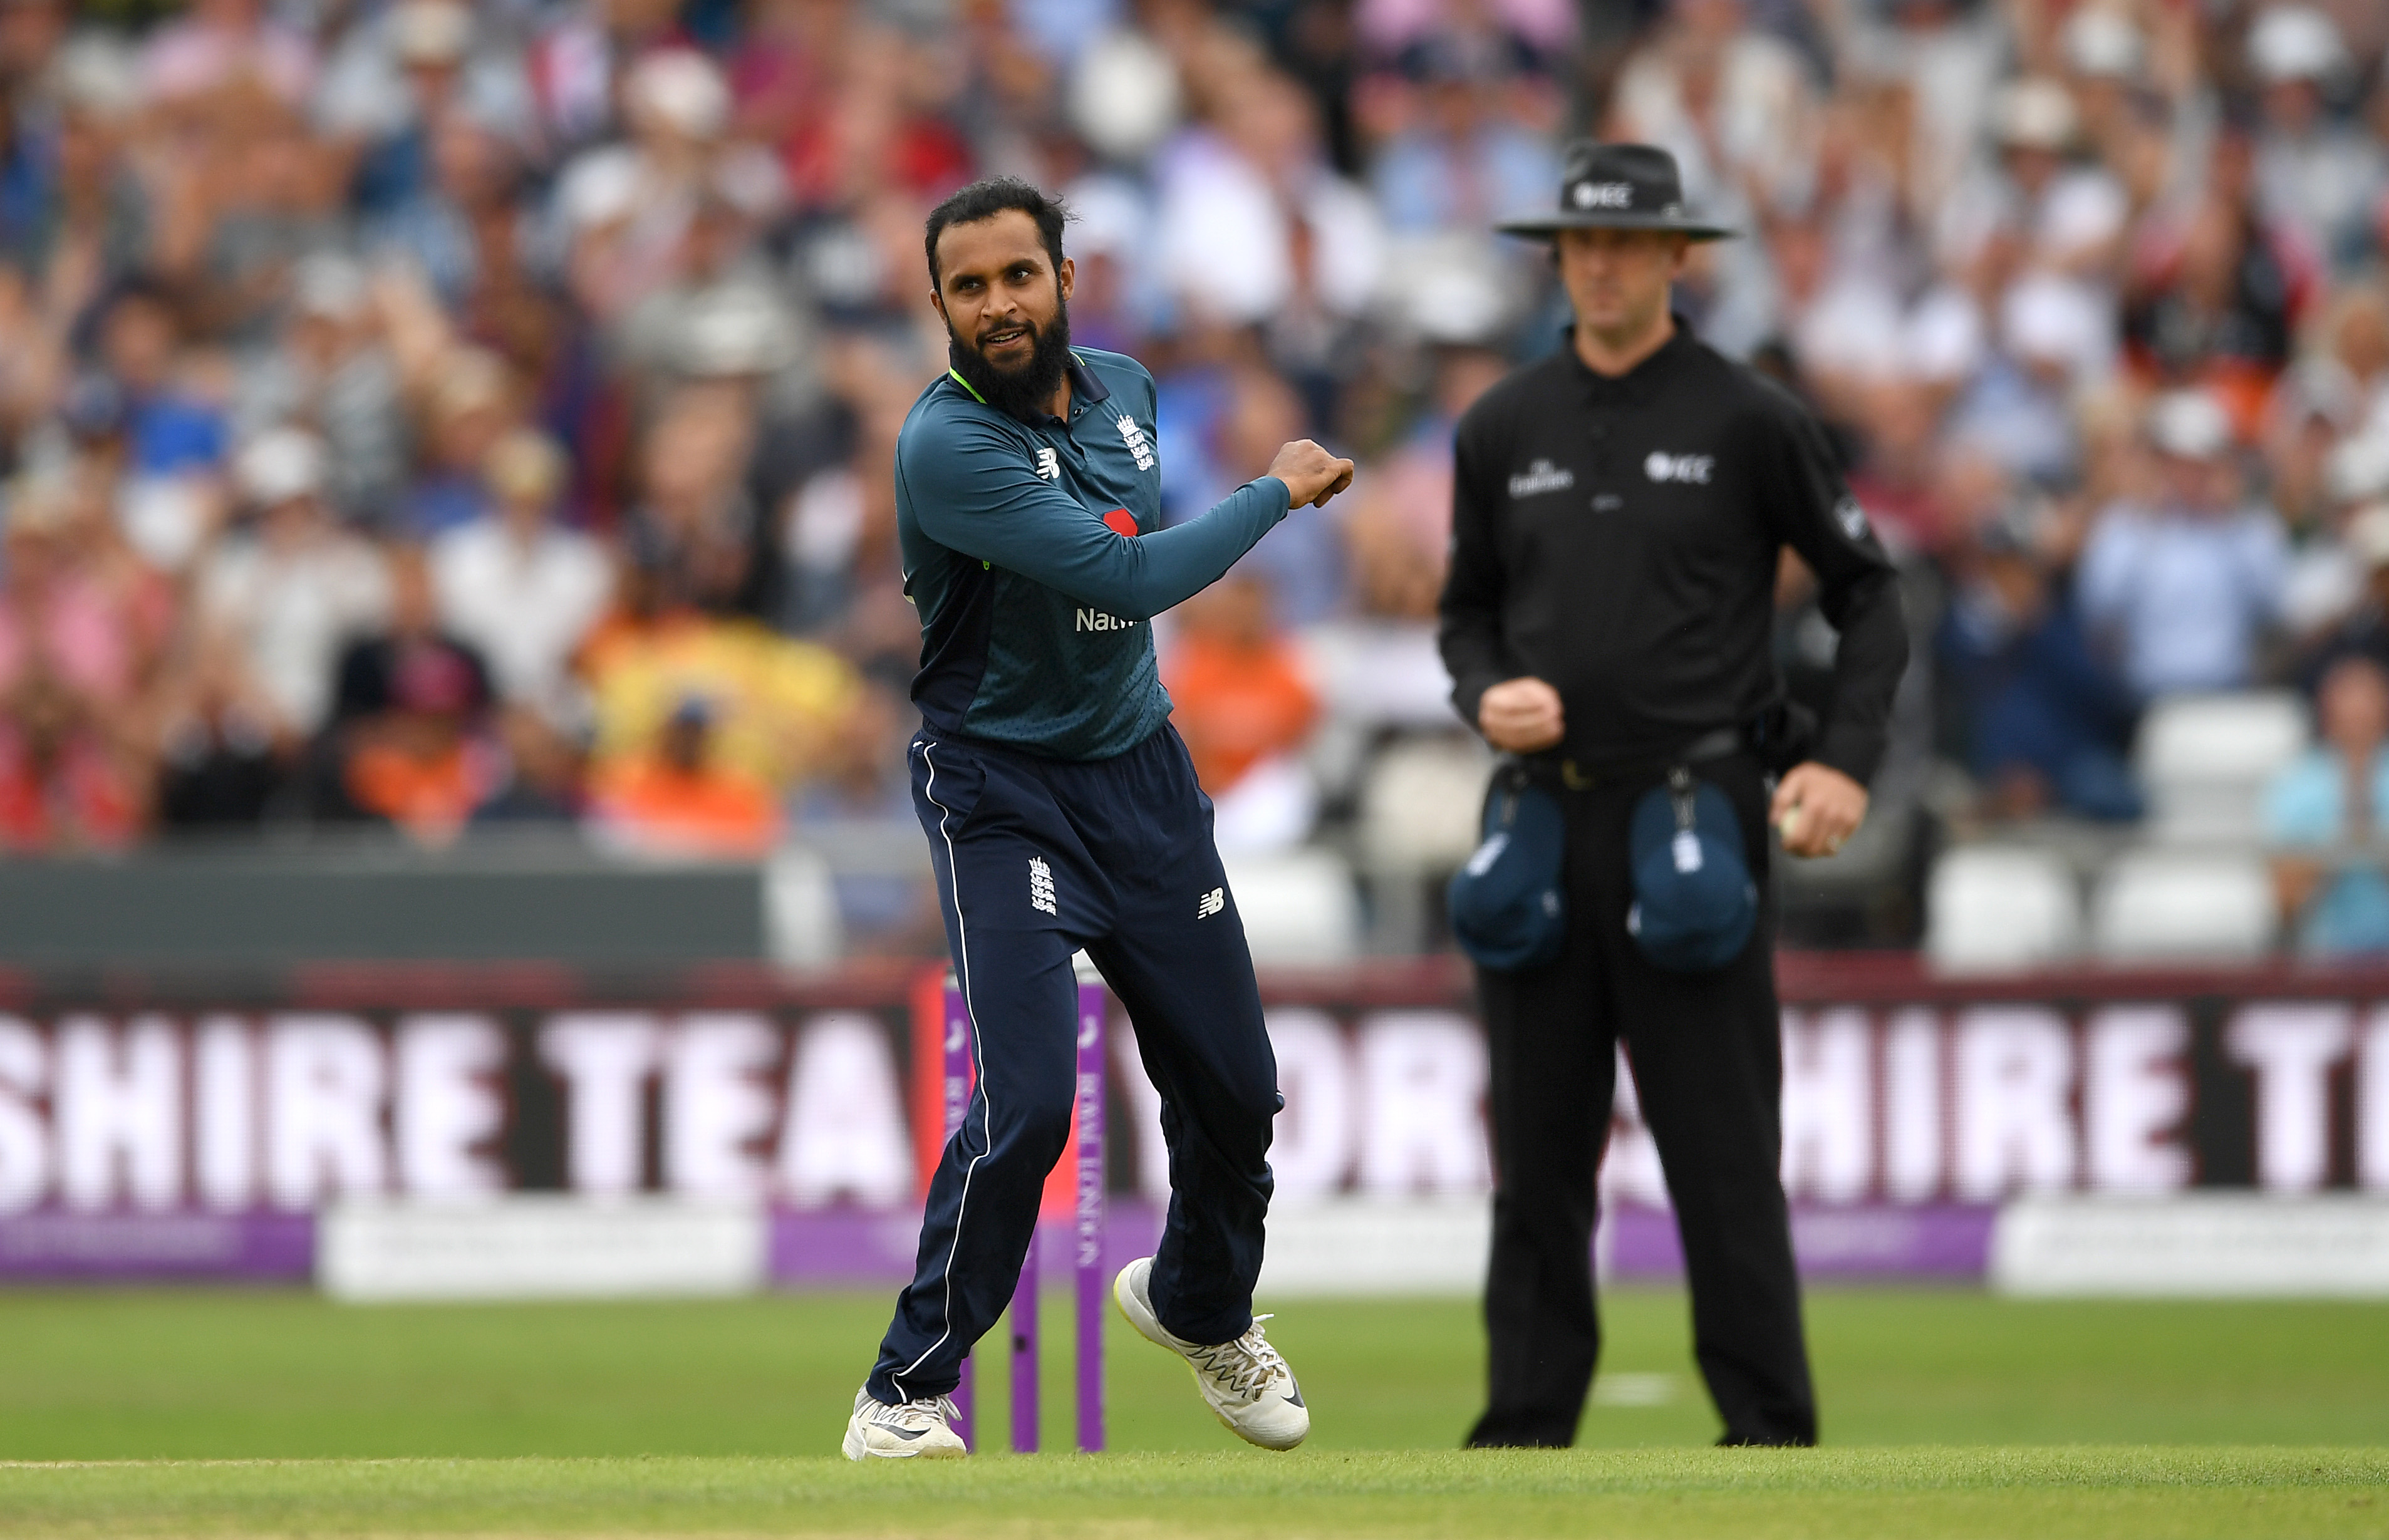 Adil Rashid proved to be the biggest nemesis for Indian batsmen | Getty